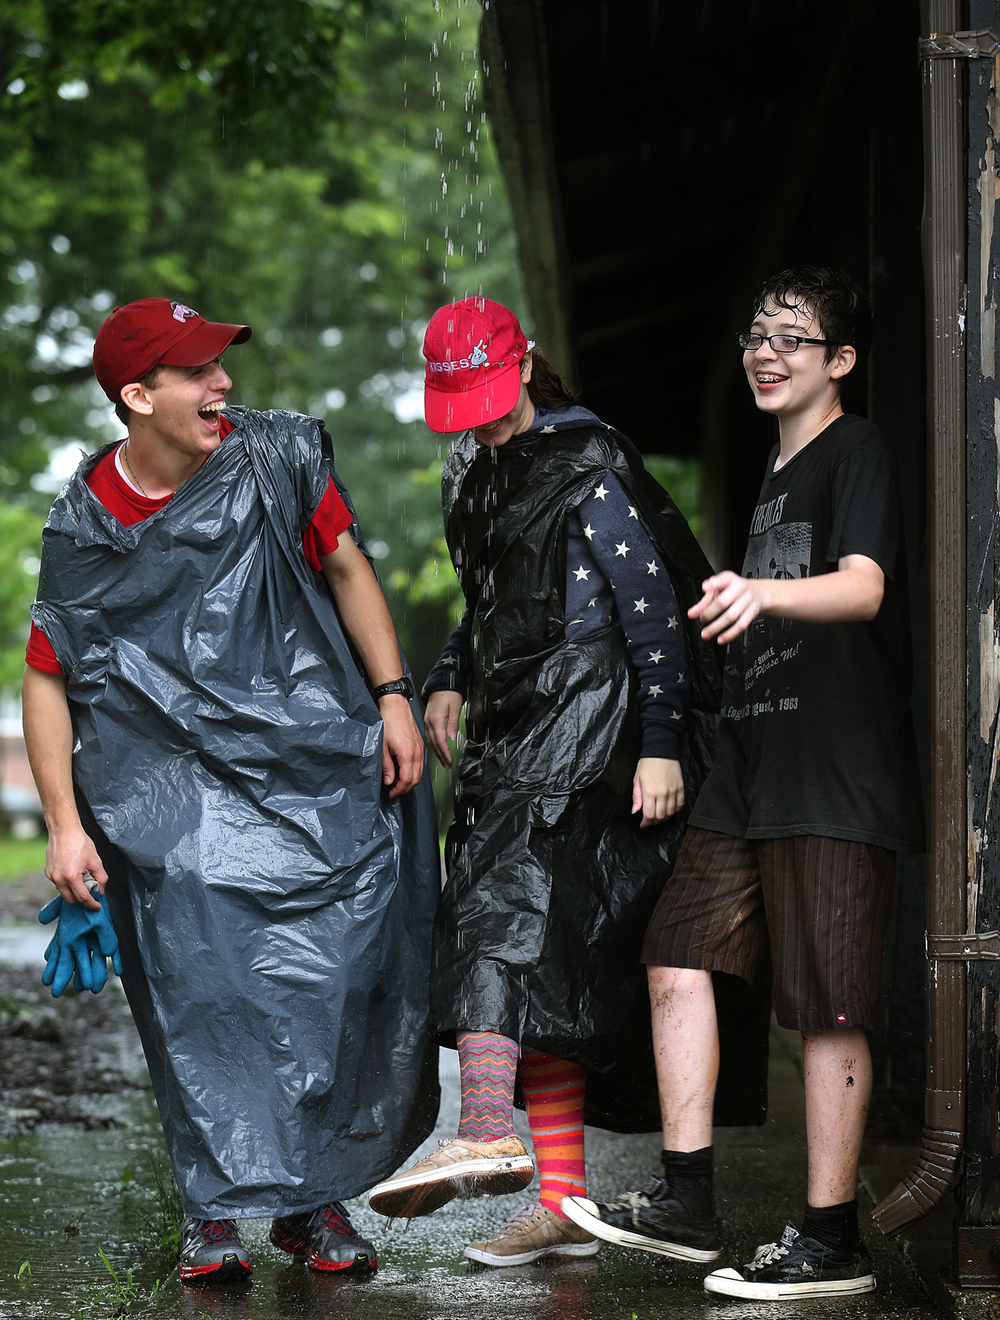 An impromptu shower in the form of rainwater coming off the roof of a pavilion at Springfield's Washington park made for an efficient way of cleaning muddy socks and shoes belonging to members of Alive in You-a Catholic service camp from the state of Virginia visiting Springfield. From left to right are Joe Gillispie, 18, Madi Waldron, 16 and Robert Powers, 14. Part of a group of 14, the campers had been doing cleannup in the children's play area of the park on Friday, June 26, 2015. David Spencer/The State Journal-Register